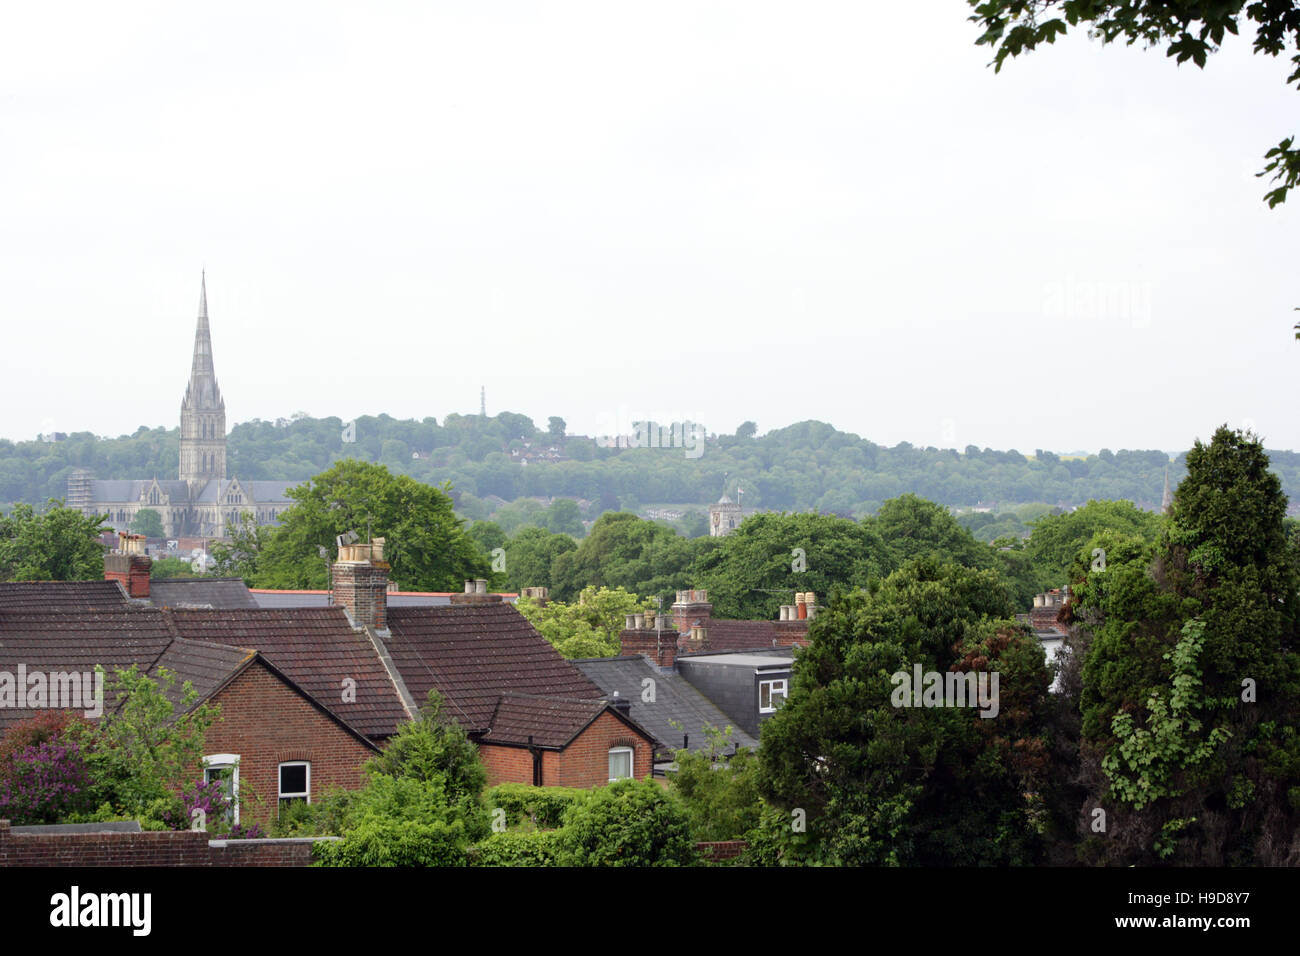 Salisbury Cathedral viewed across rooftops. Stock Photo